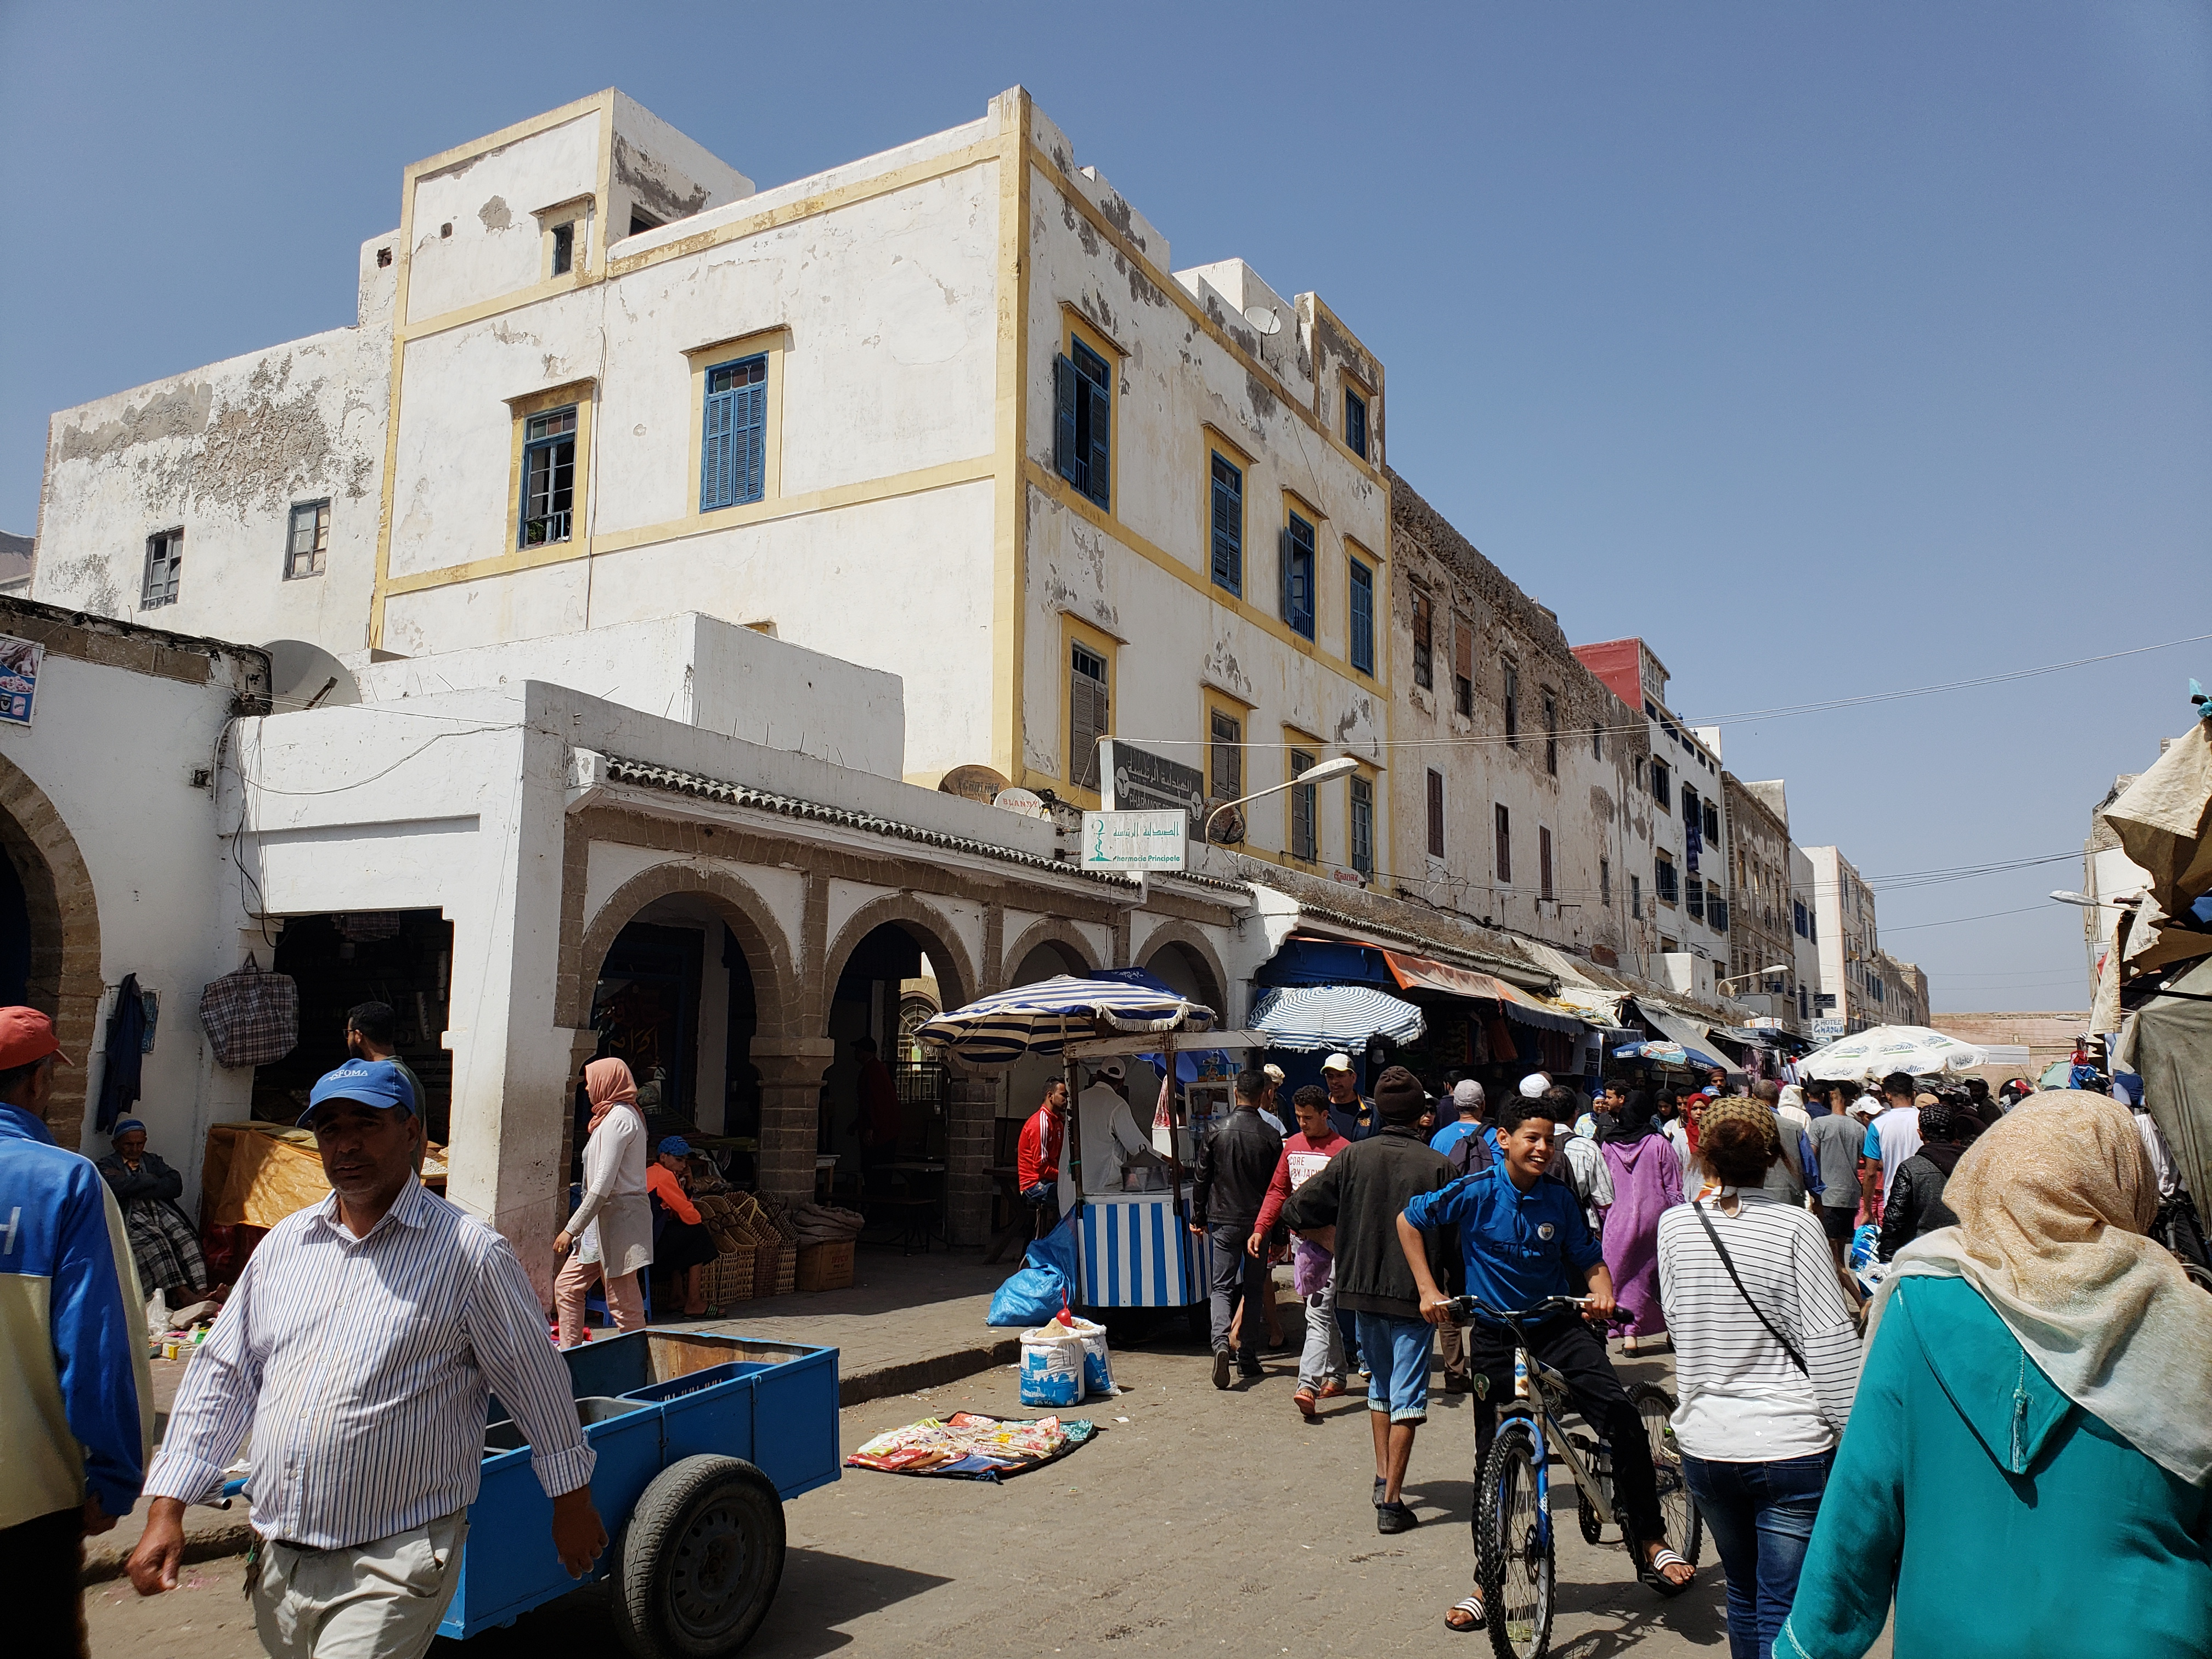 The bustling souk of Essaouira, Morocco.